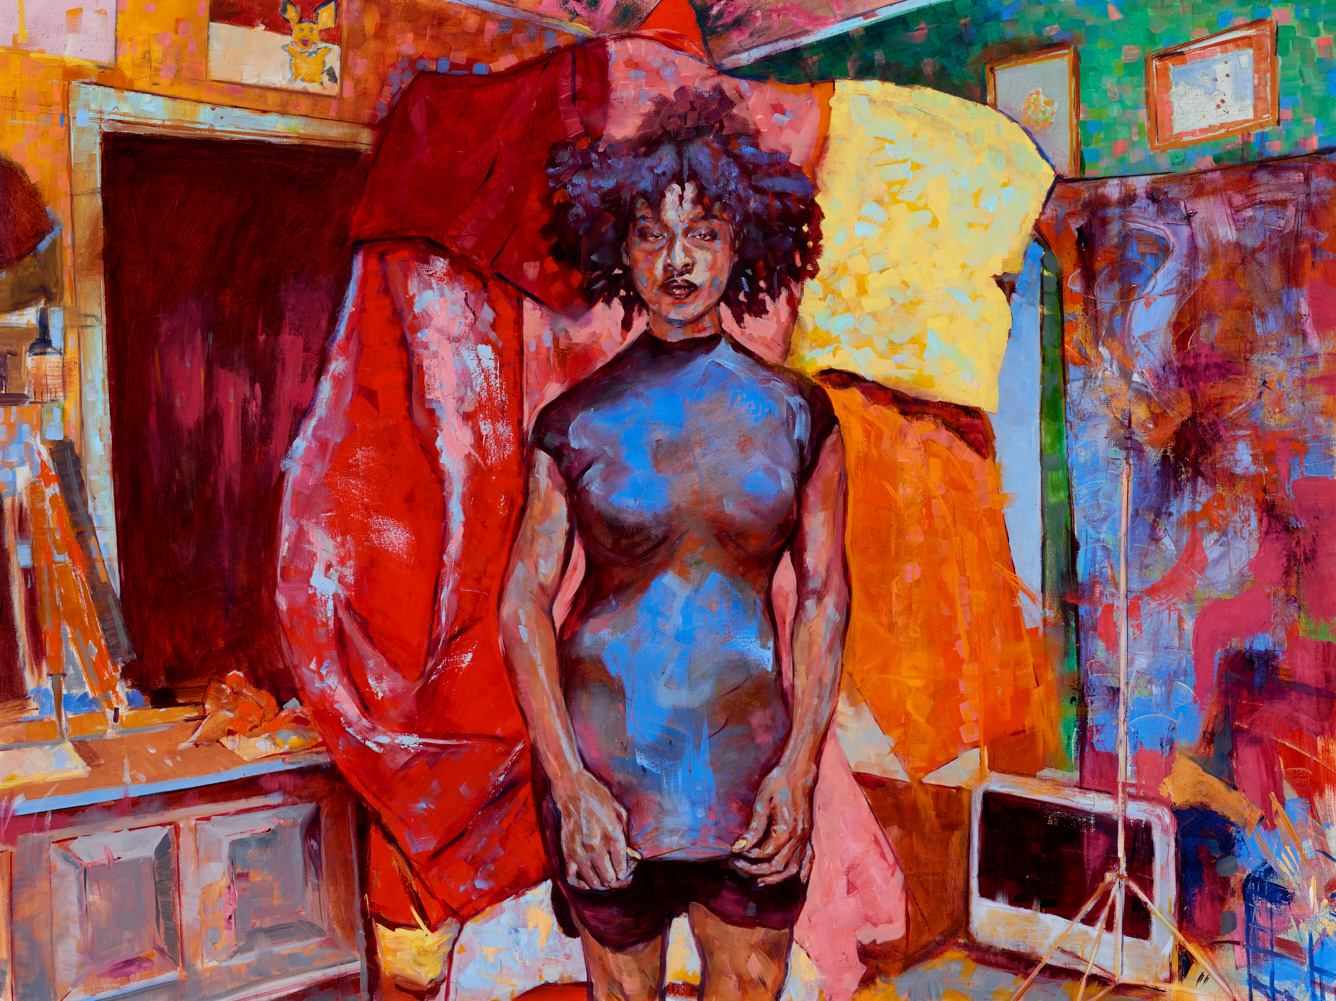 Kim's Room  2017, oil on canvas, 36 x 48in. SOLD